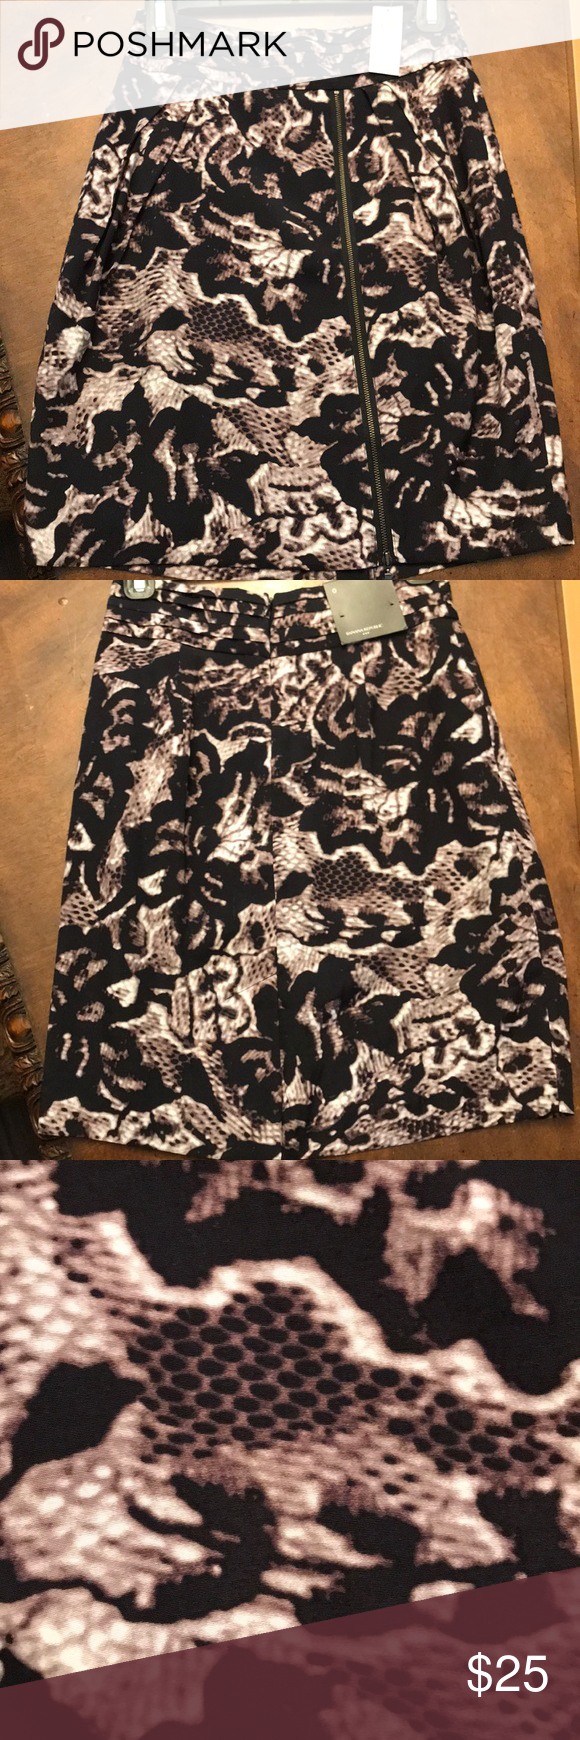 Banana Republic skirt Beautiful skirt with zipper.  Still has tags on. Banana Republic Skirts #myposhpicks